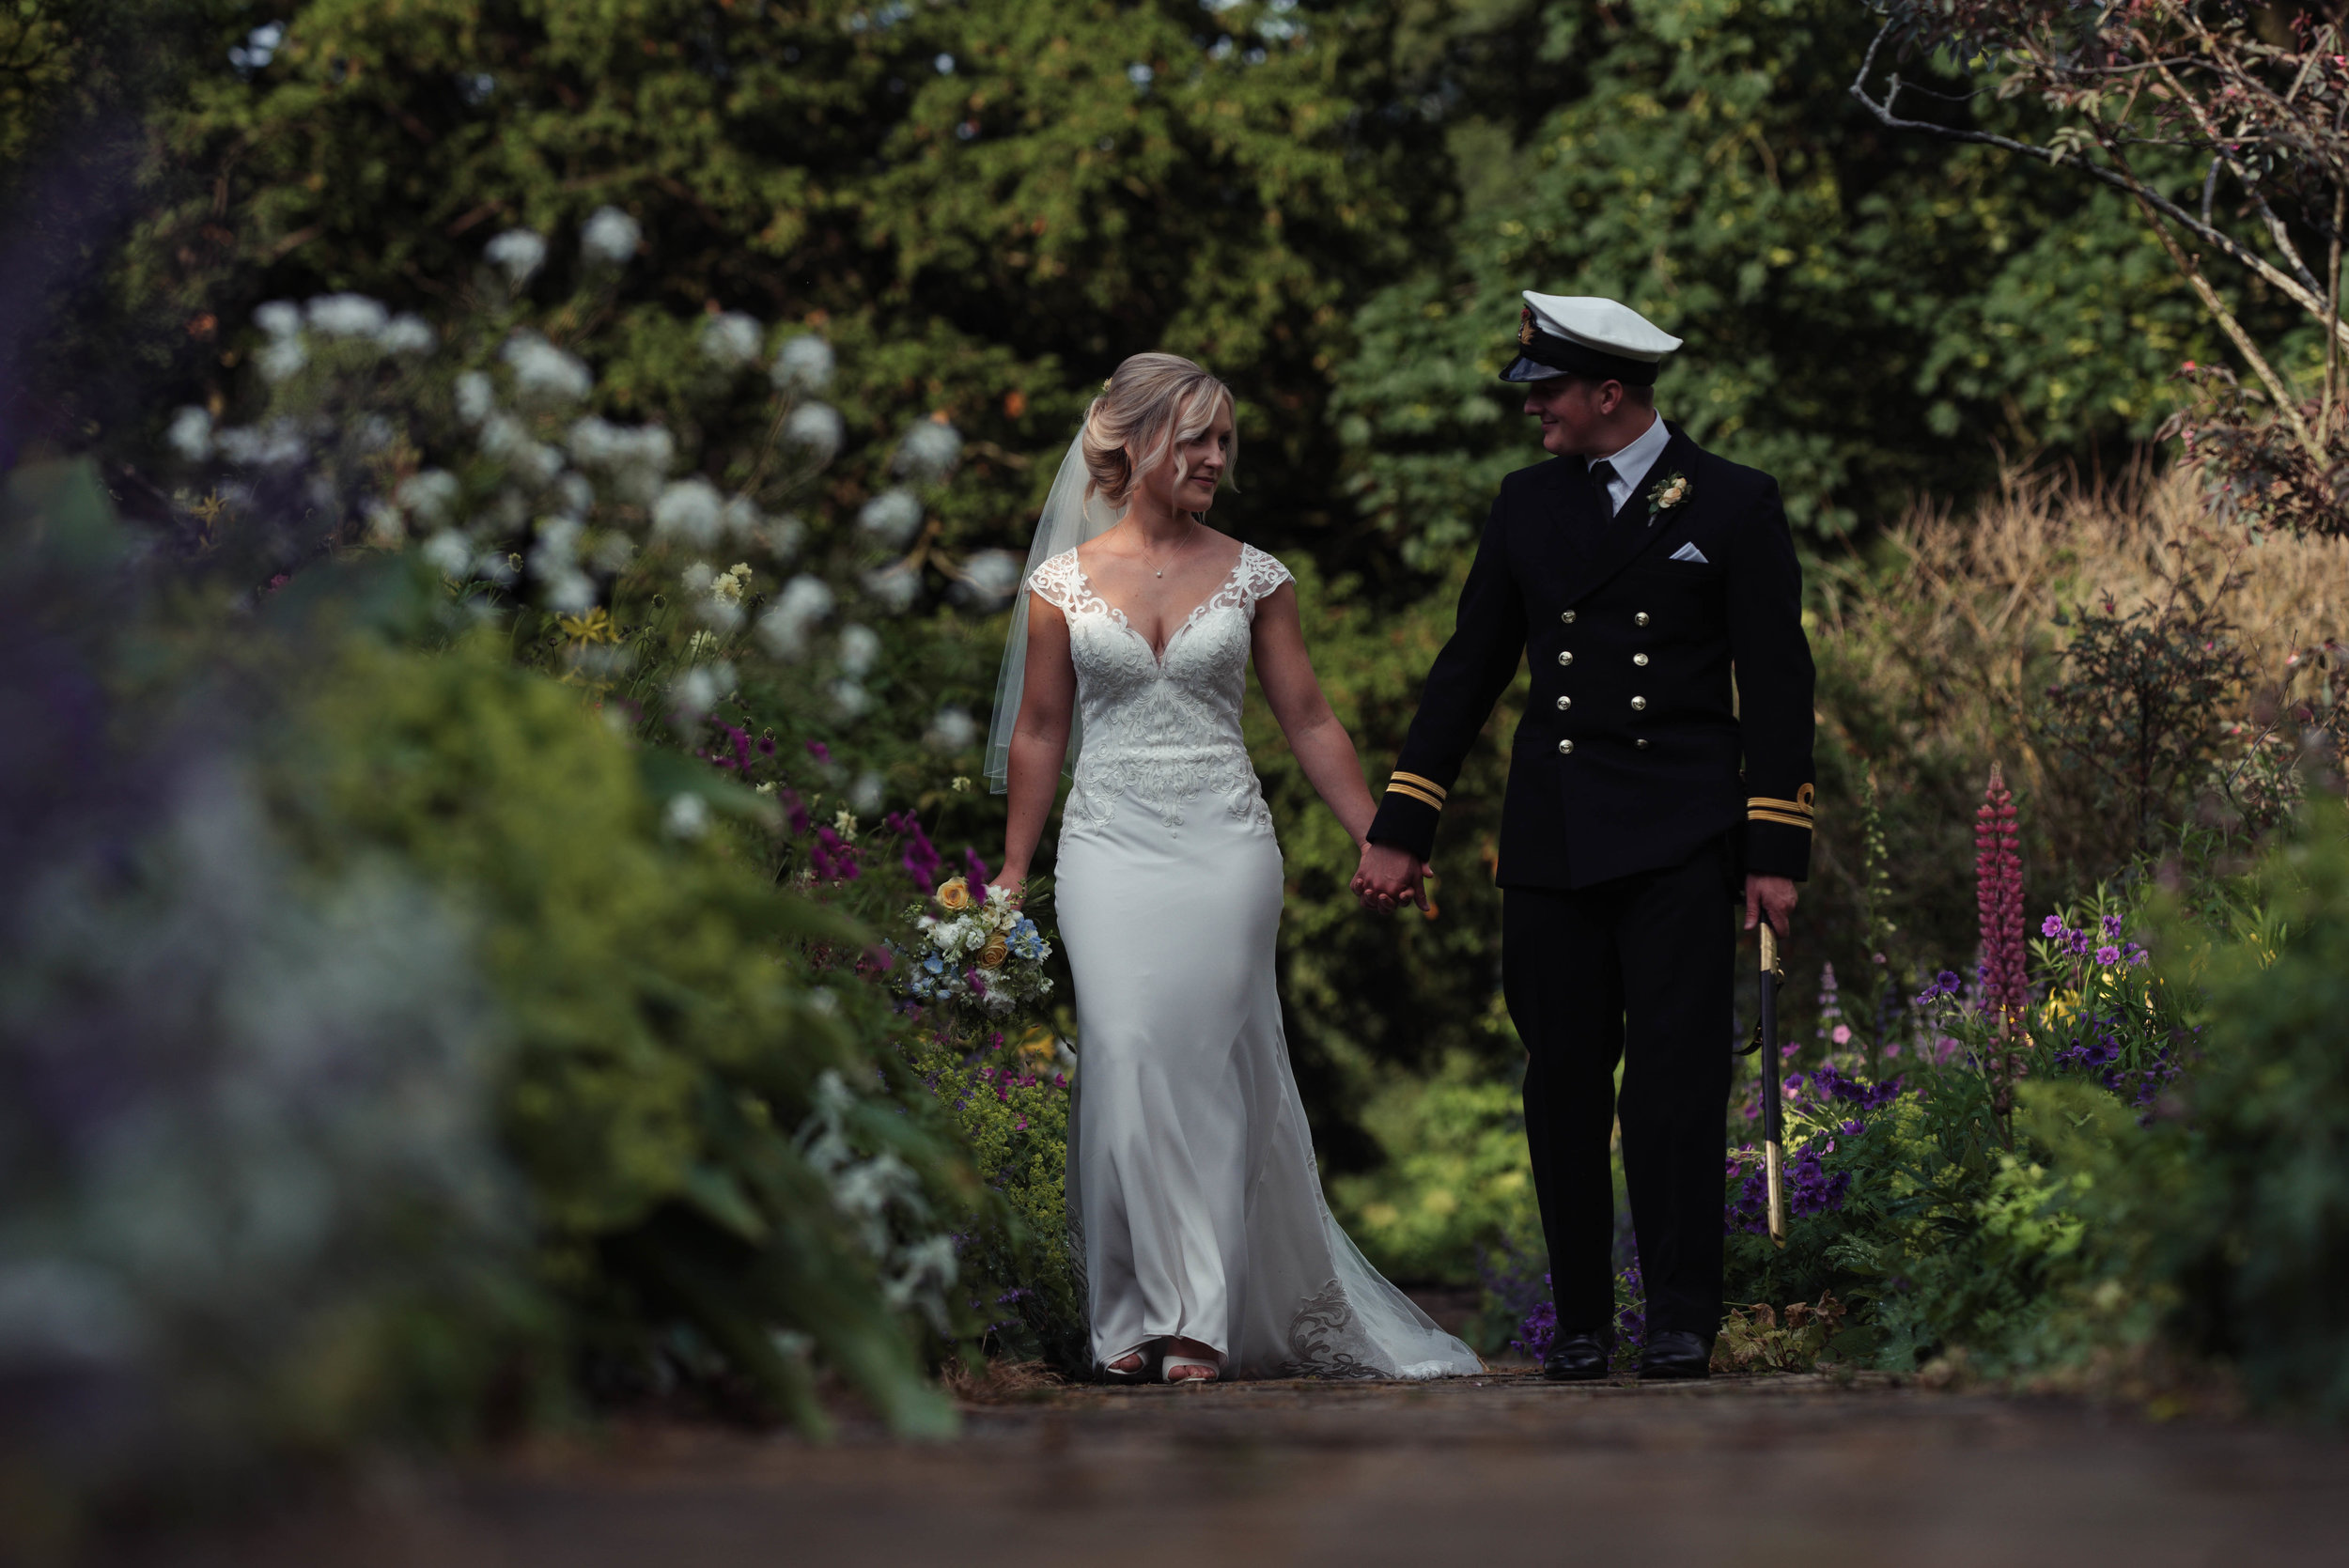 The bride and groom walk among the flowers at Askham Hall